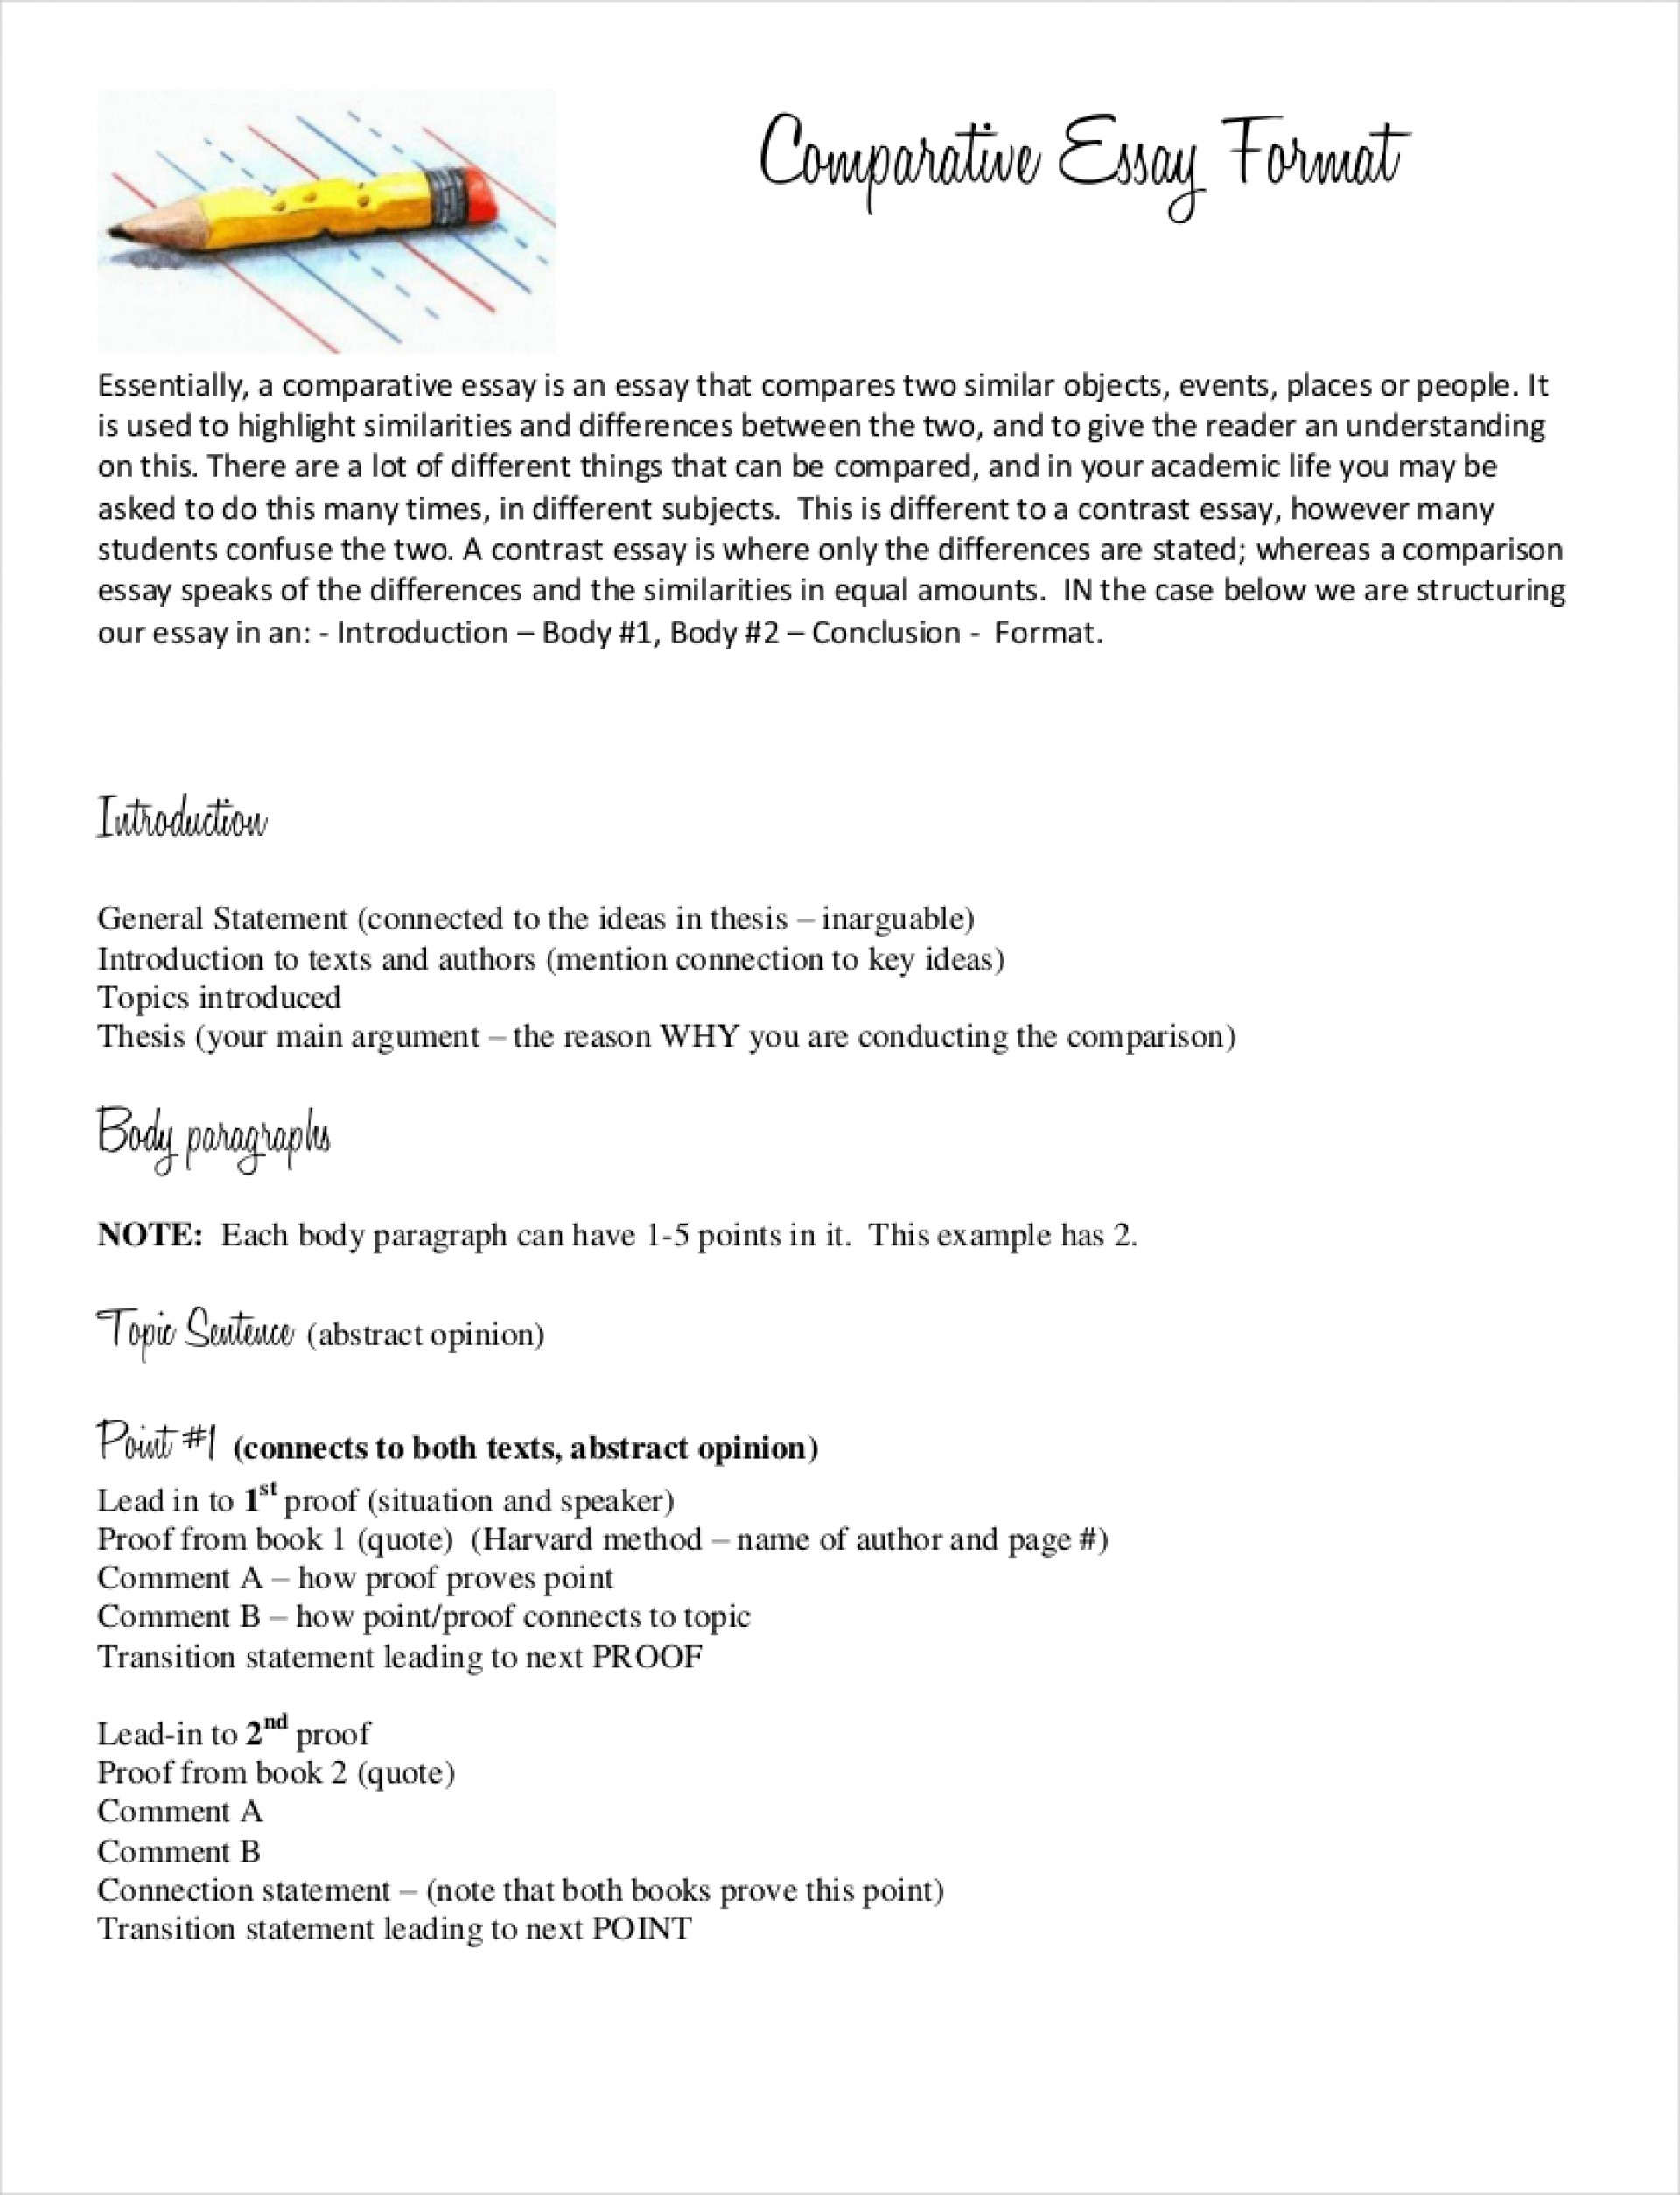 010 Essay Example Comparative Samples Free Pdf Format Download How To Write Poetry Introduction Sample Fo Contrast Vce Incredible A Comparison Outline Compare Ap World History 1920